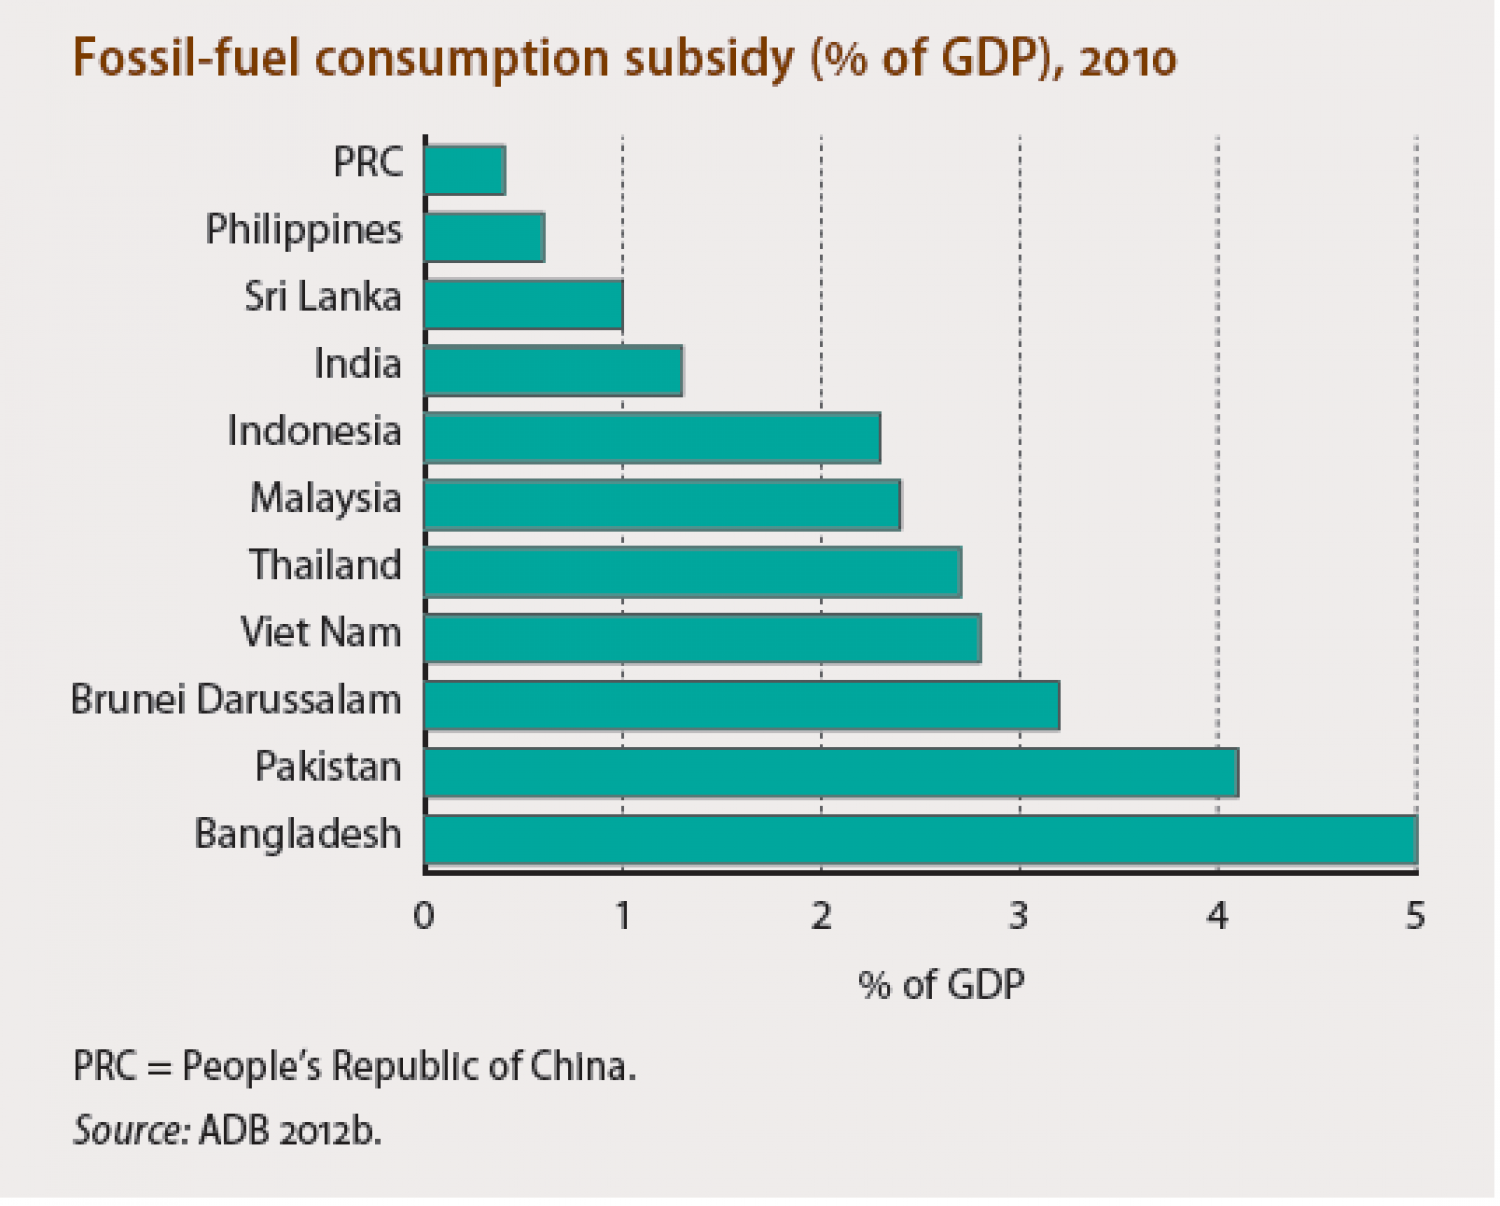 Fossil-fuel consumption subsidy (% of GDP), 2010 Infographic